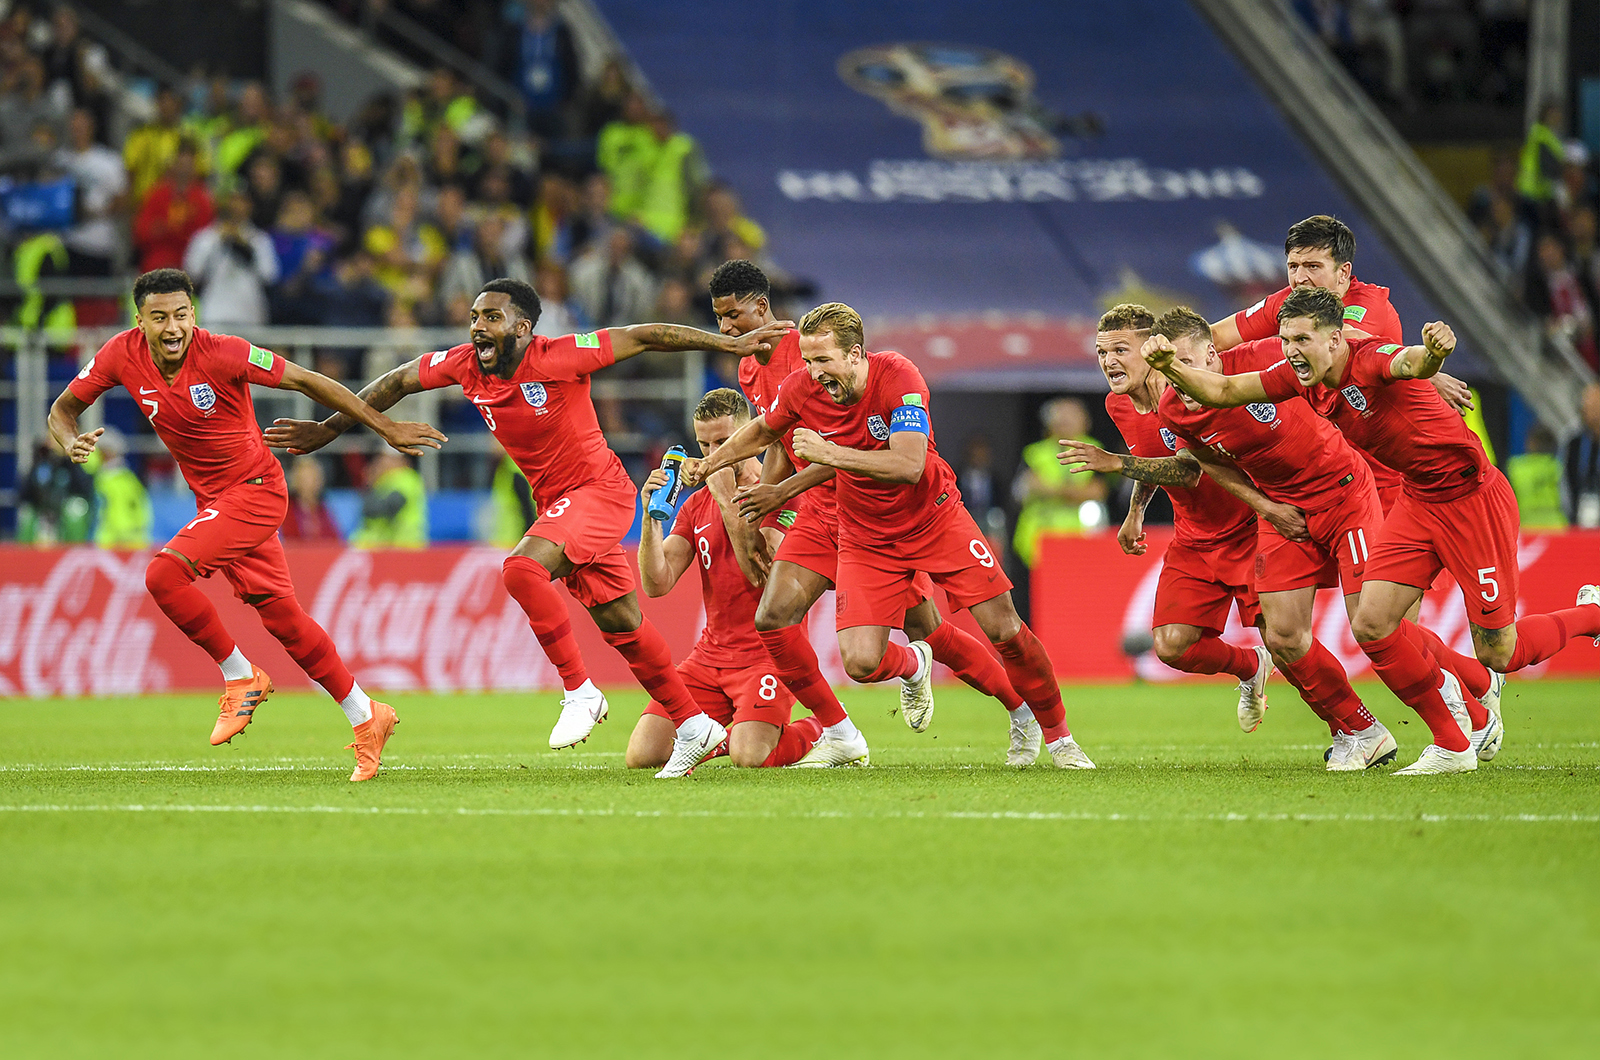 England Win on Penalties in Russia 2018